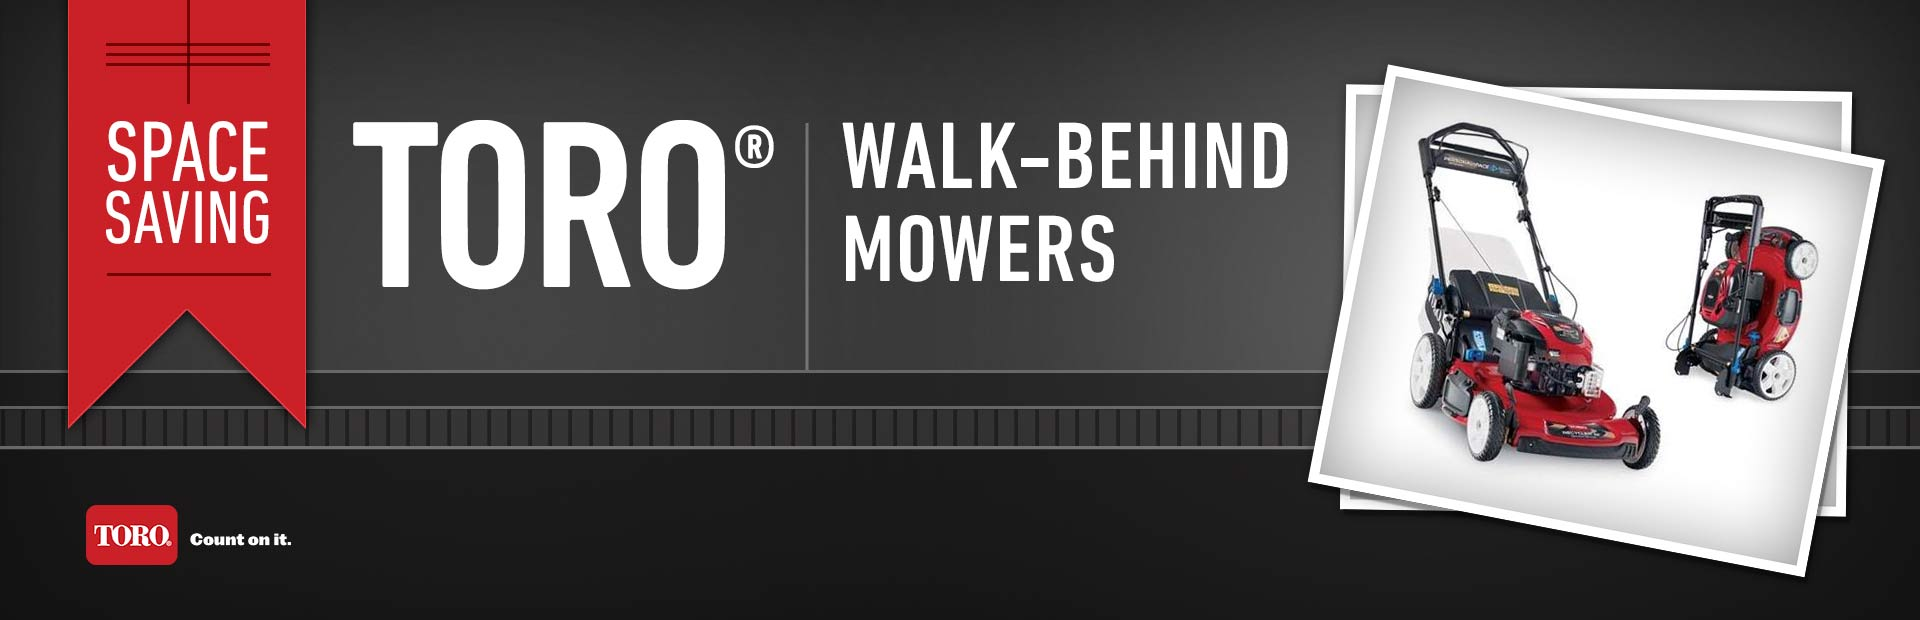 Space Saving Toro® Walk-Behind Mowers: Click here to view the models.